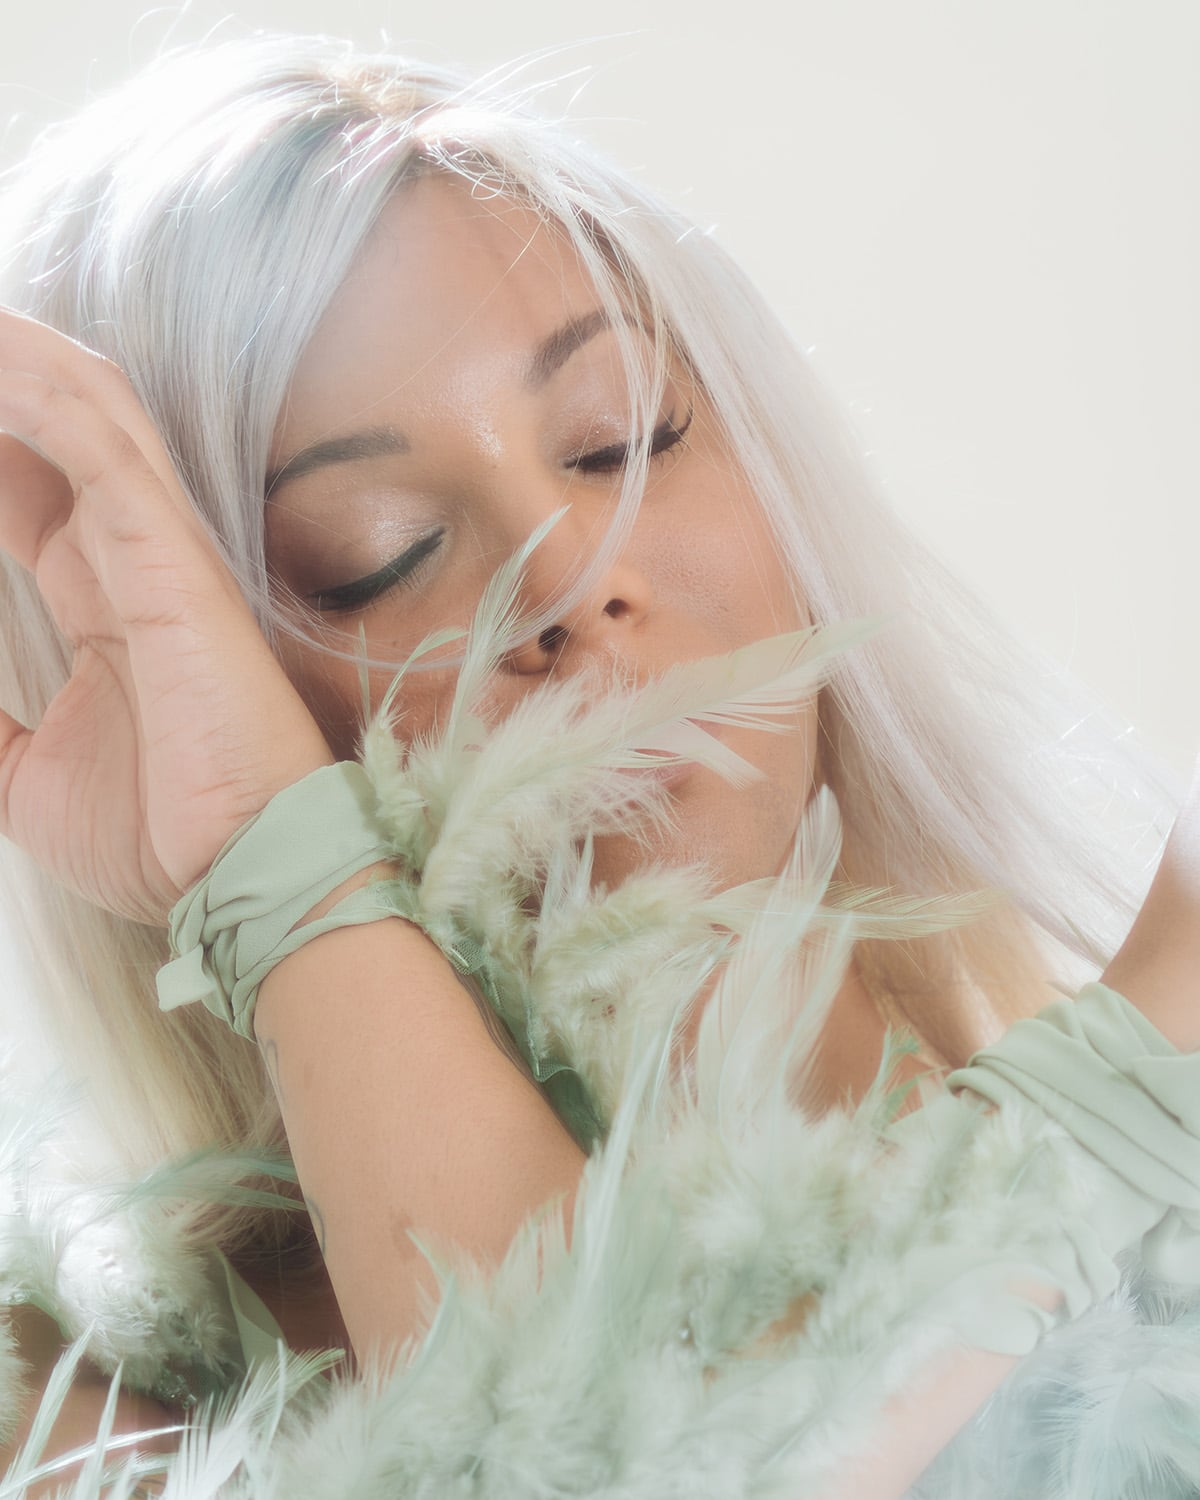 Soft vintage portrait photography of trans activist Munroe Bergdorf by London portrait photographer Ira Giorgetti